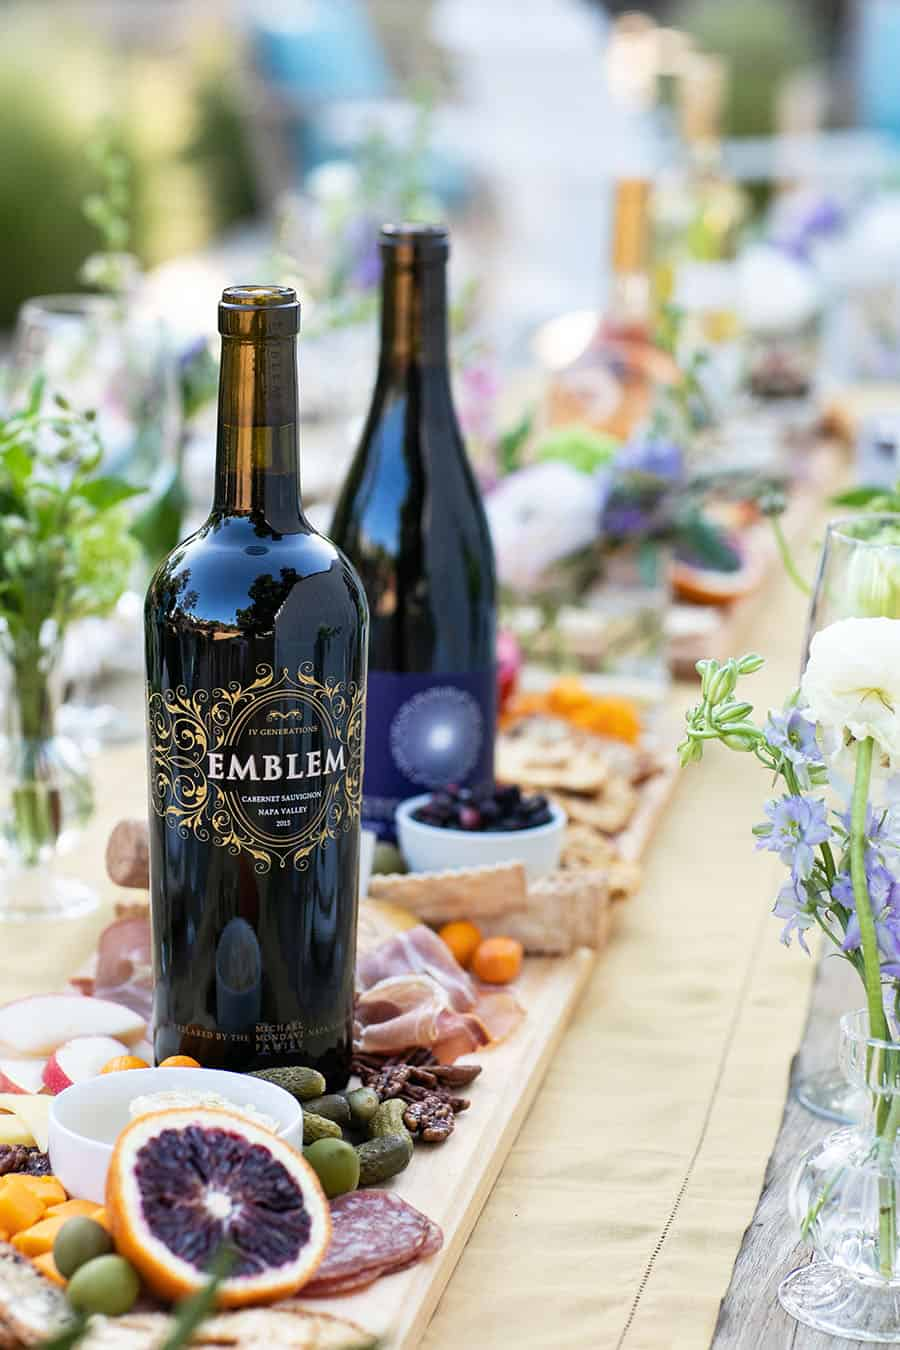 Bottle of Emblem wine on a cheee board with cheese and fruit.